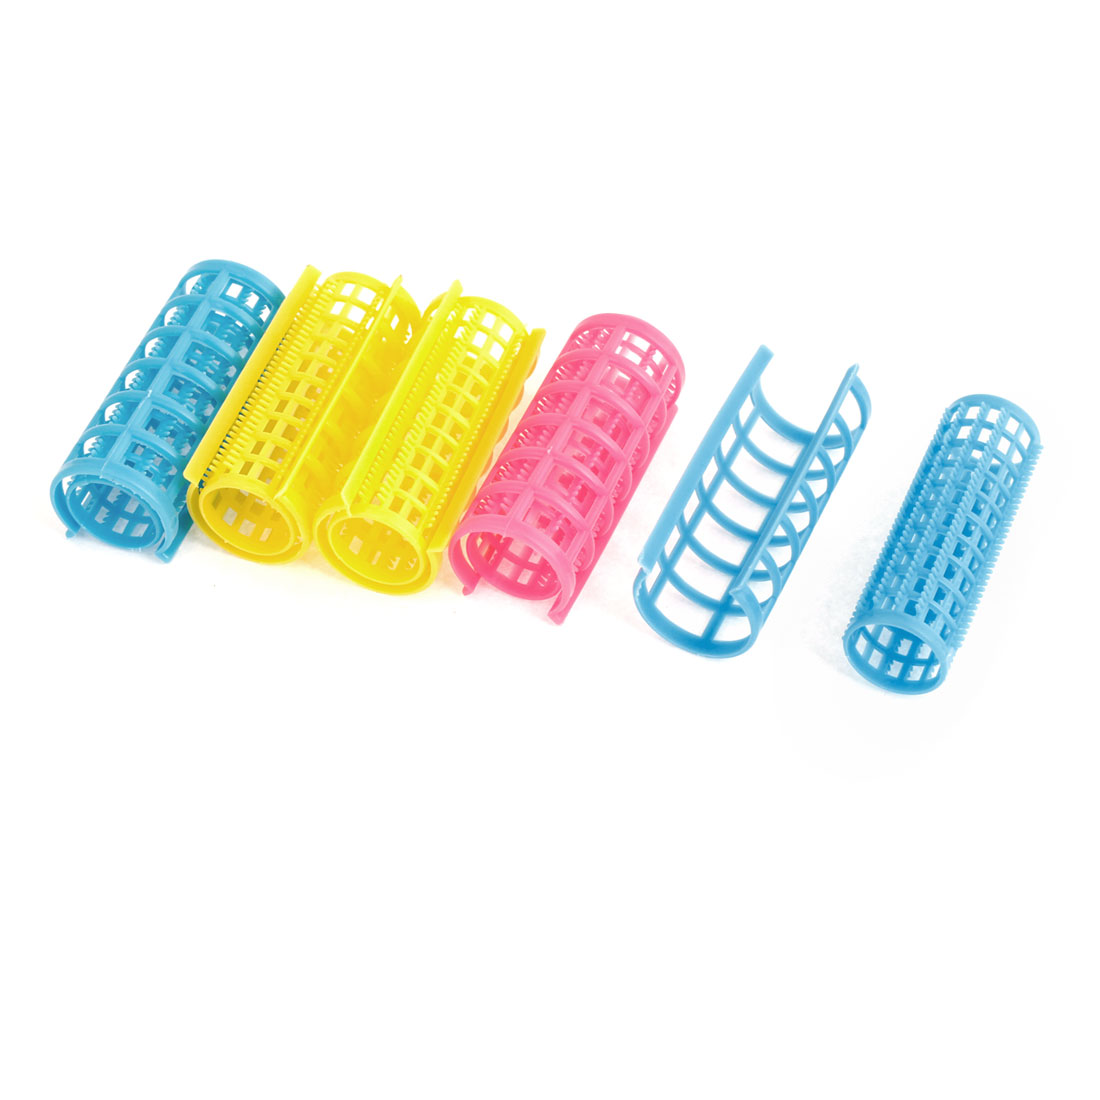 5 Pcs Plastic Hairdressing Hair Curlers Clips for Lady